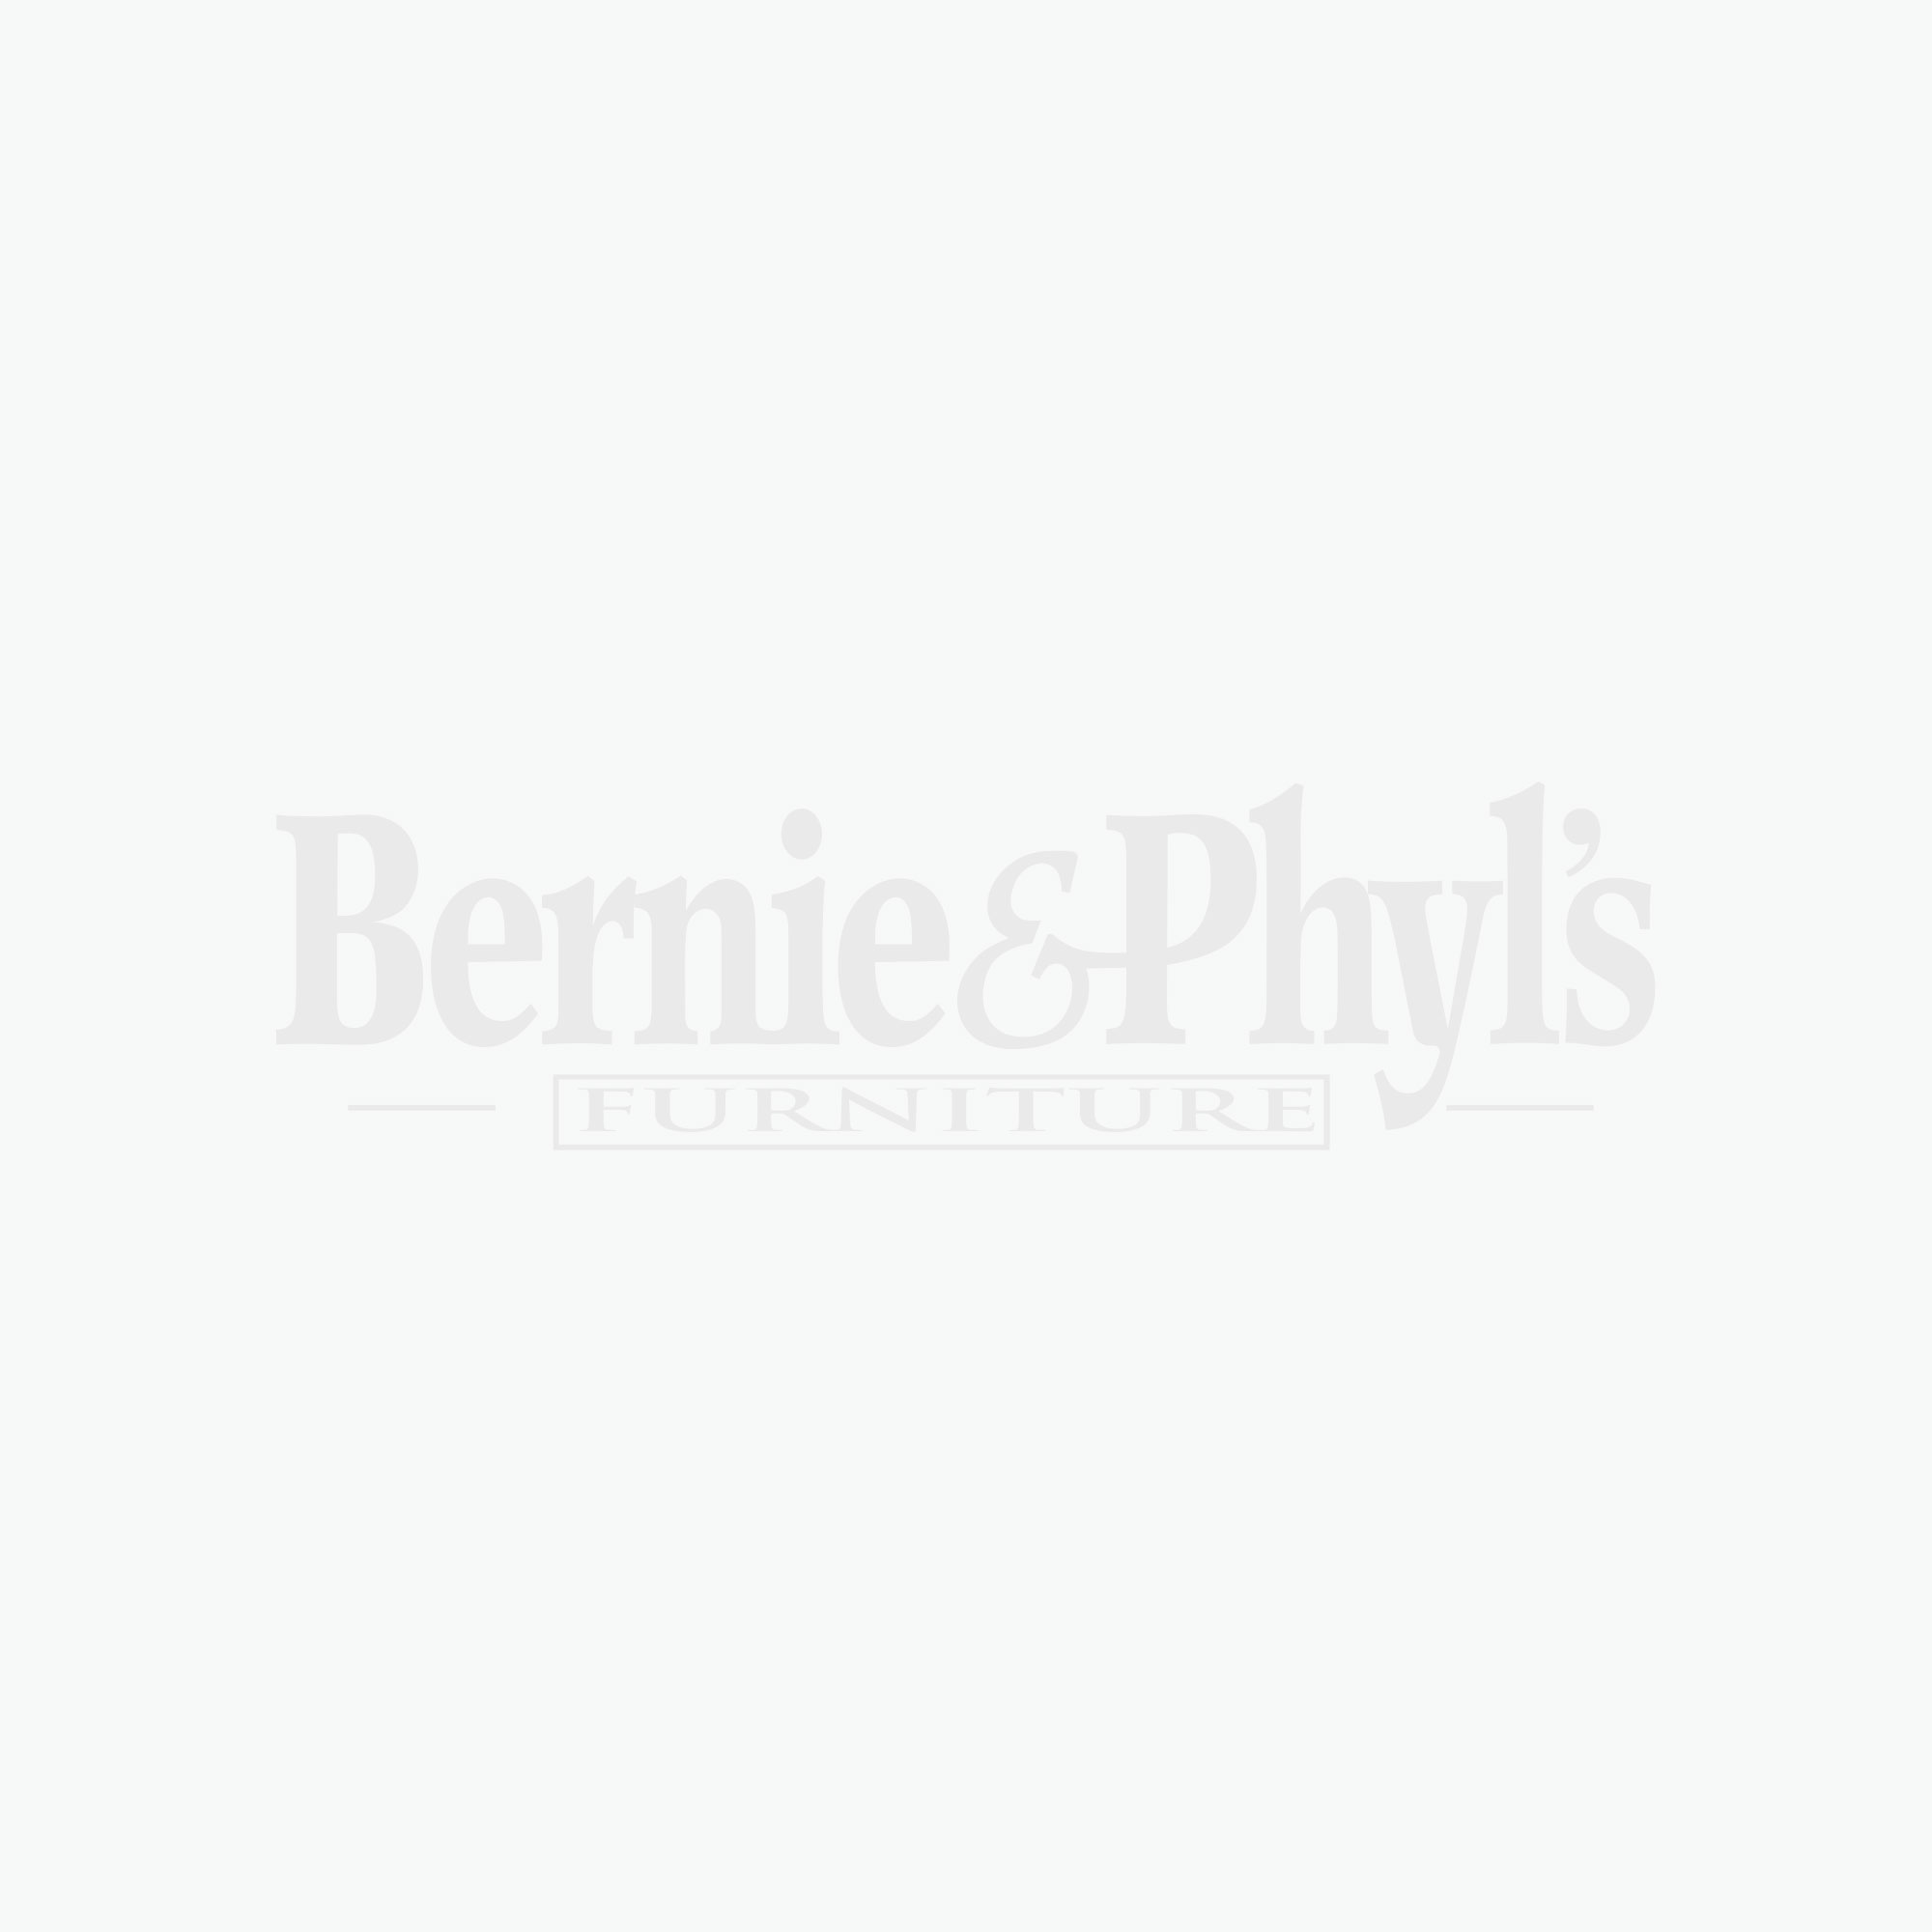 dining table bernie phyl s furniture by warehouse m furniture